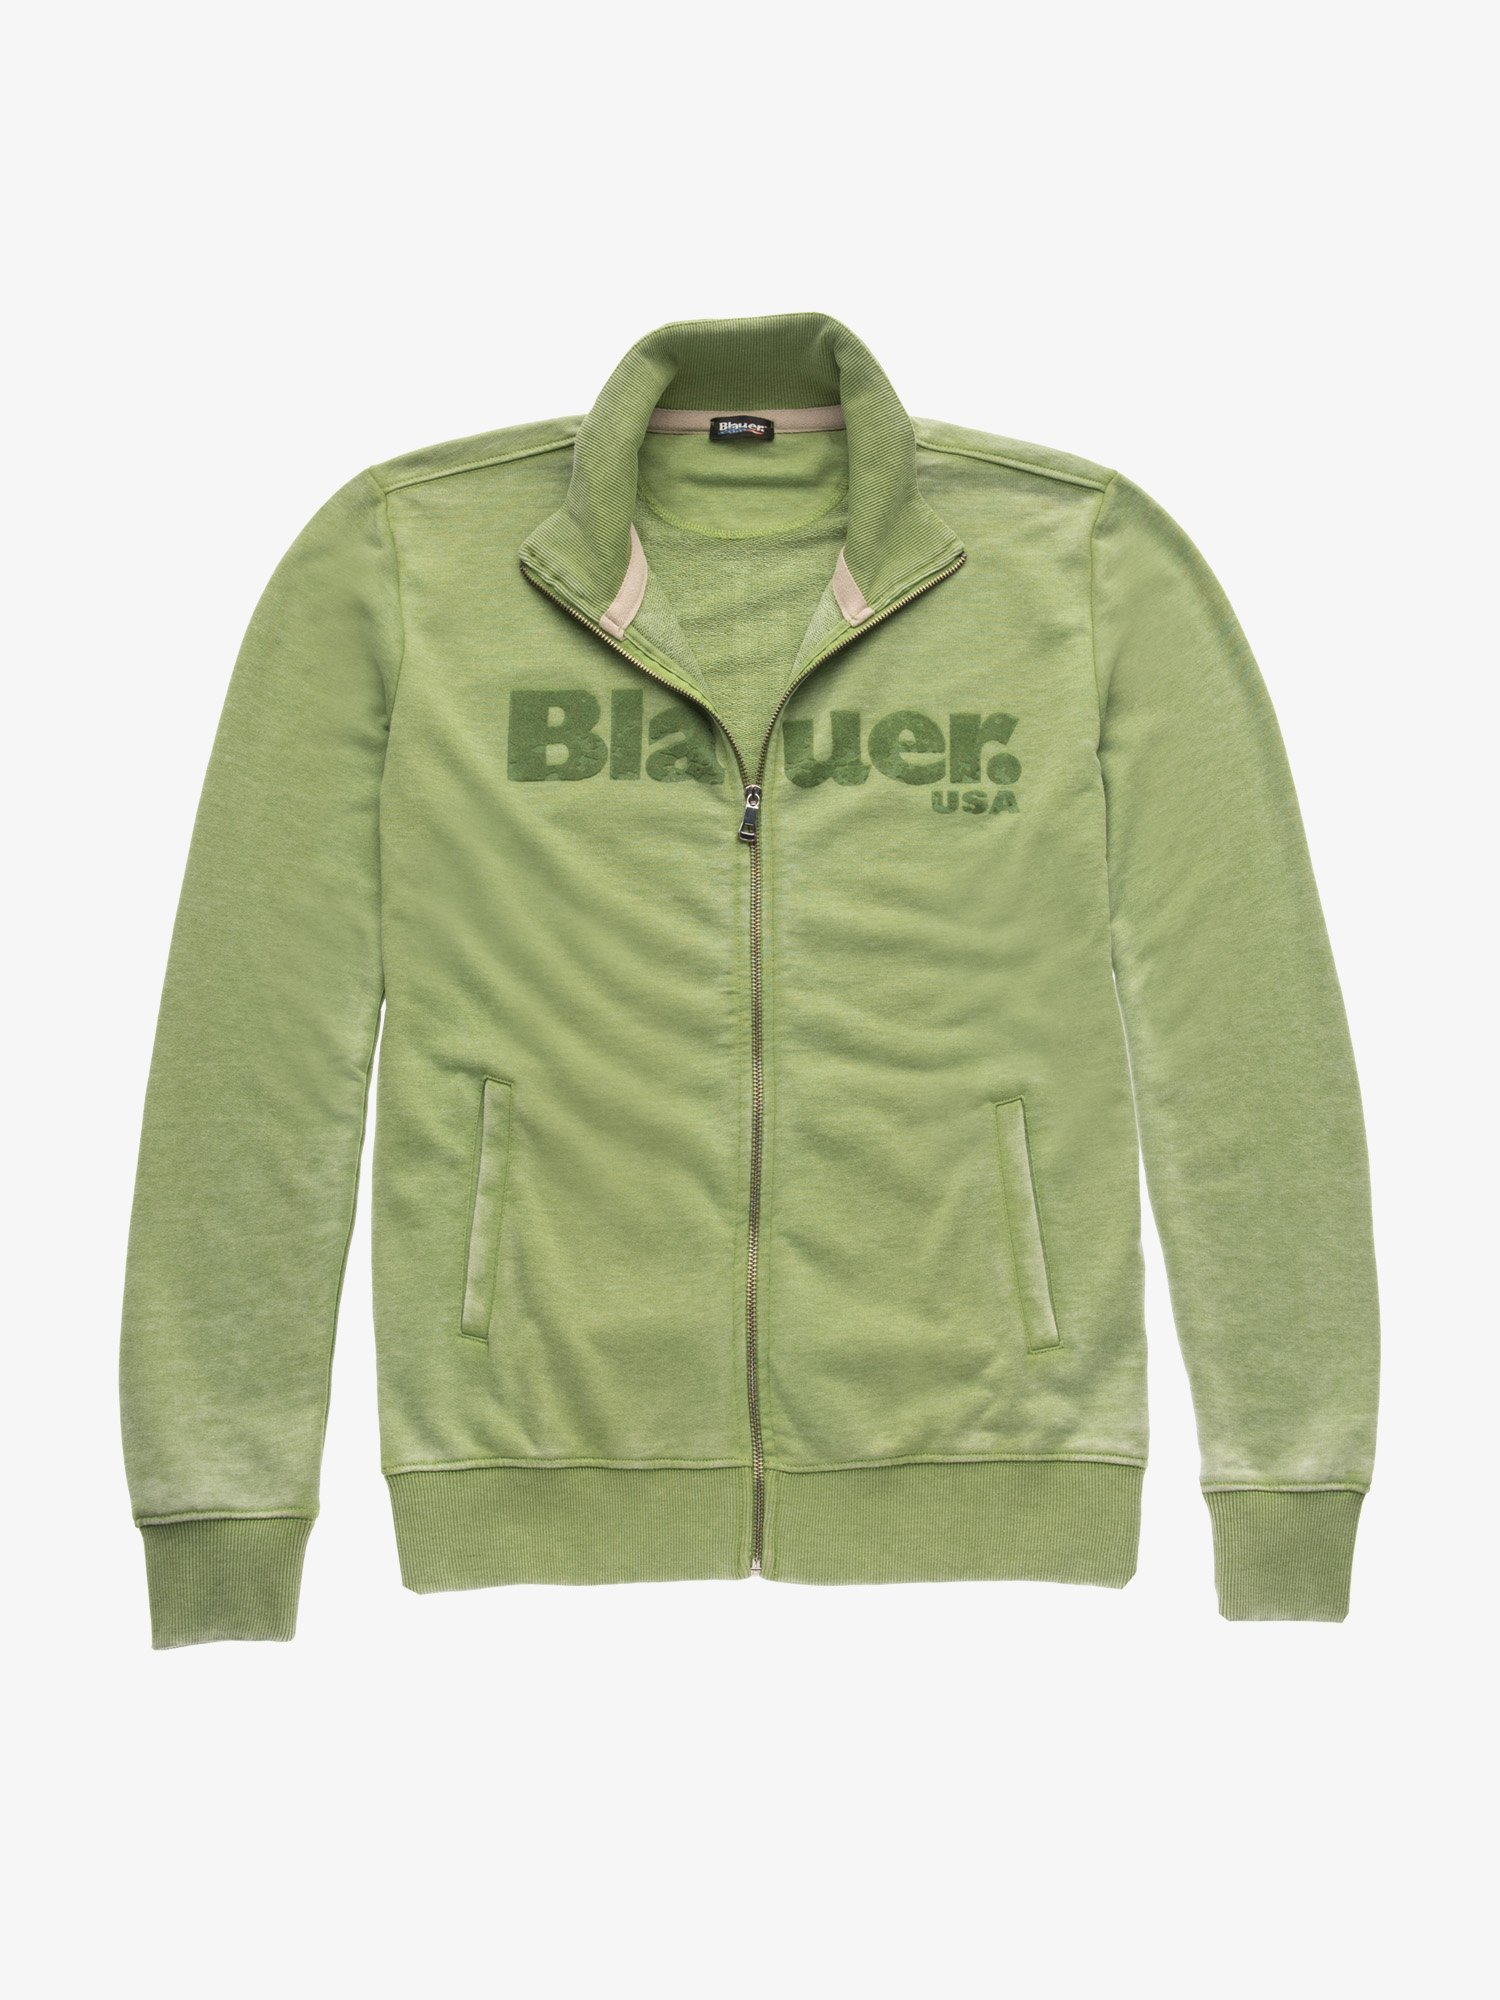 Blauer - OPEN ZIP SWEATSHIRT WITHOUT HOOD - Green Pea - Blauer